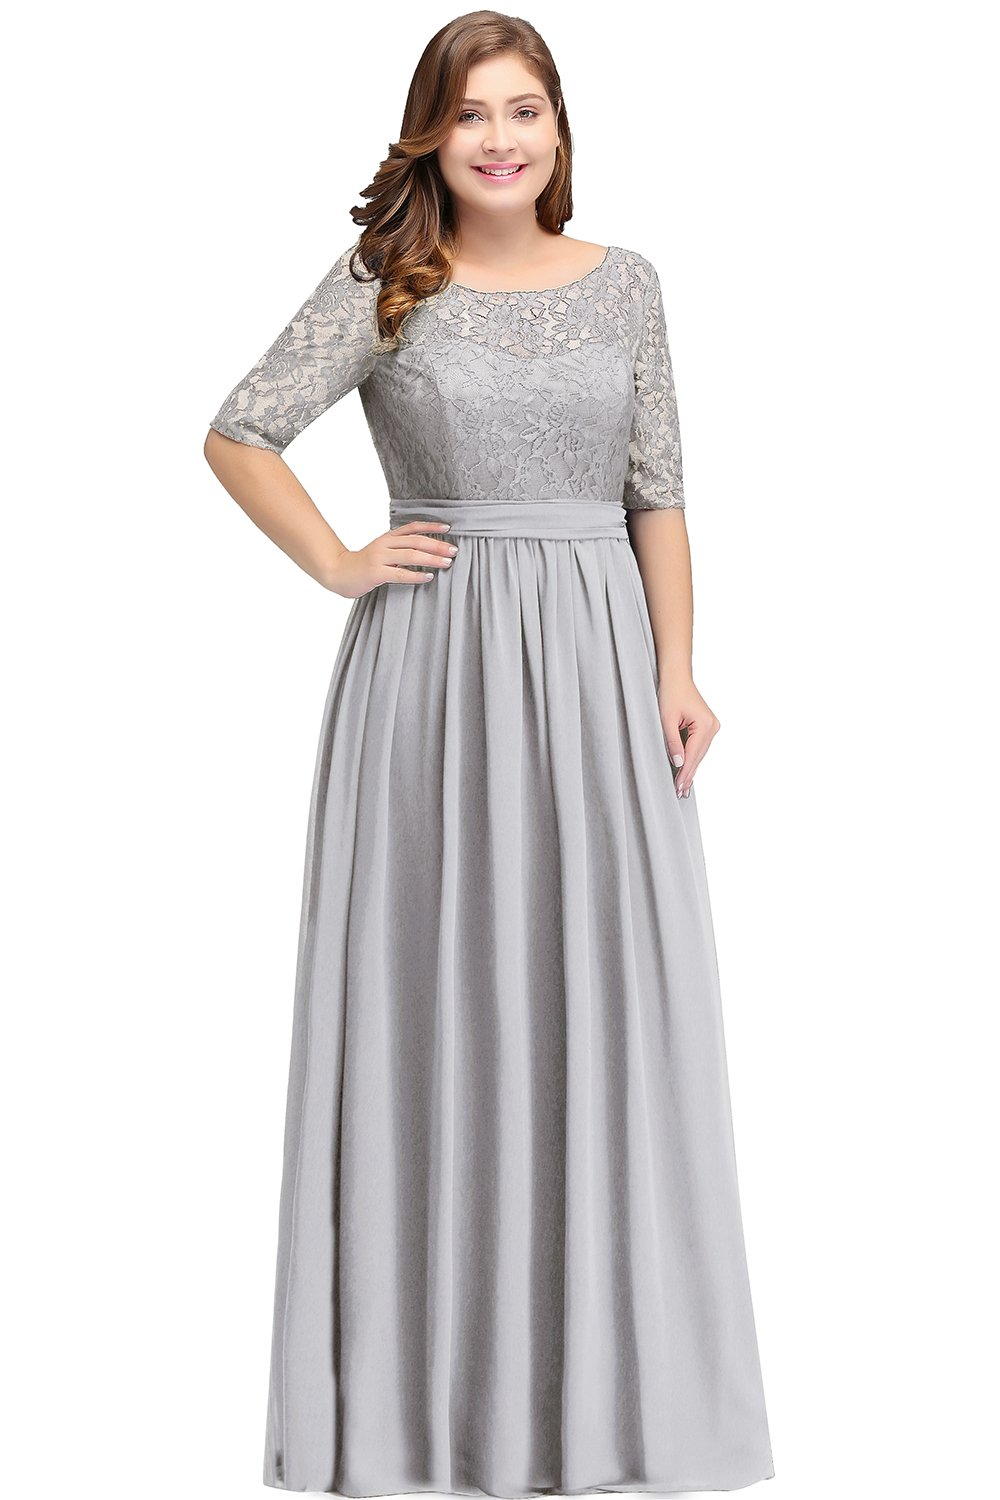 Mother Of The Bride Dresses - Women Plus Size Chiffon Evening Dresses Long Prom Bridesmaid Gown